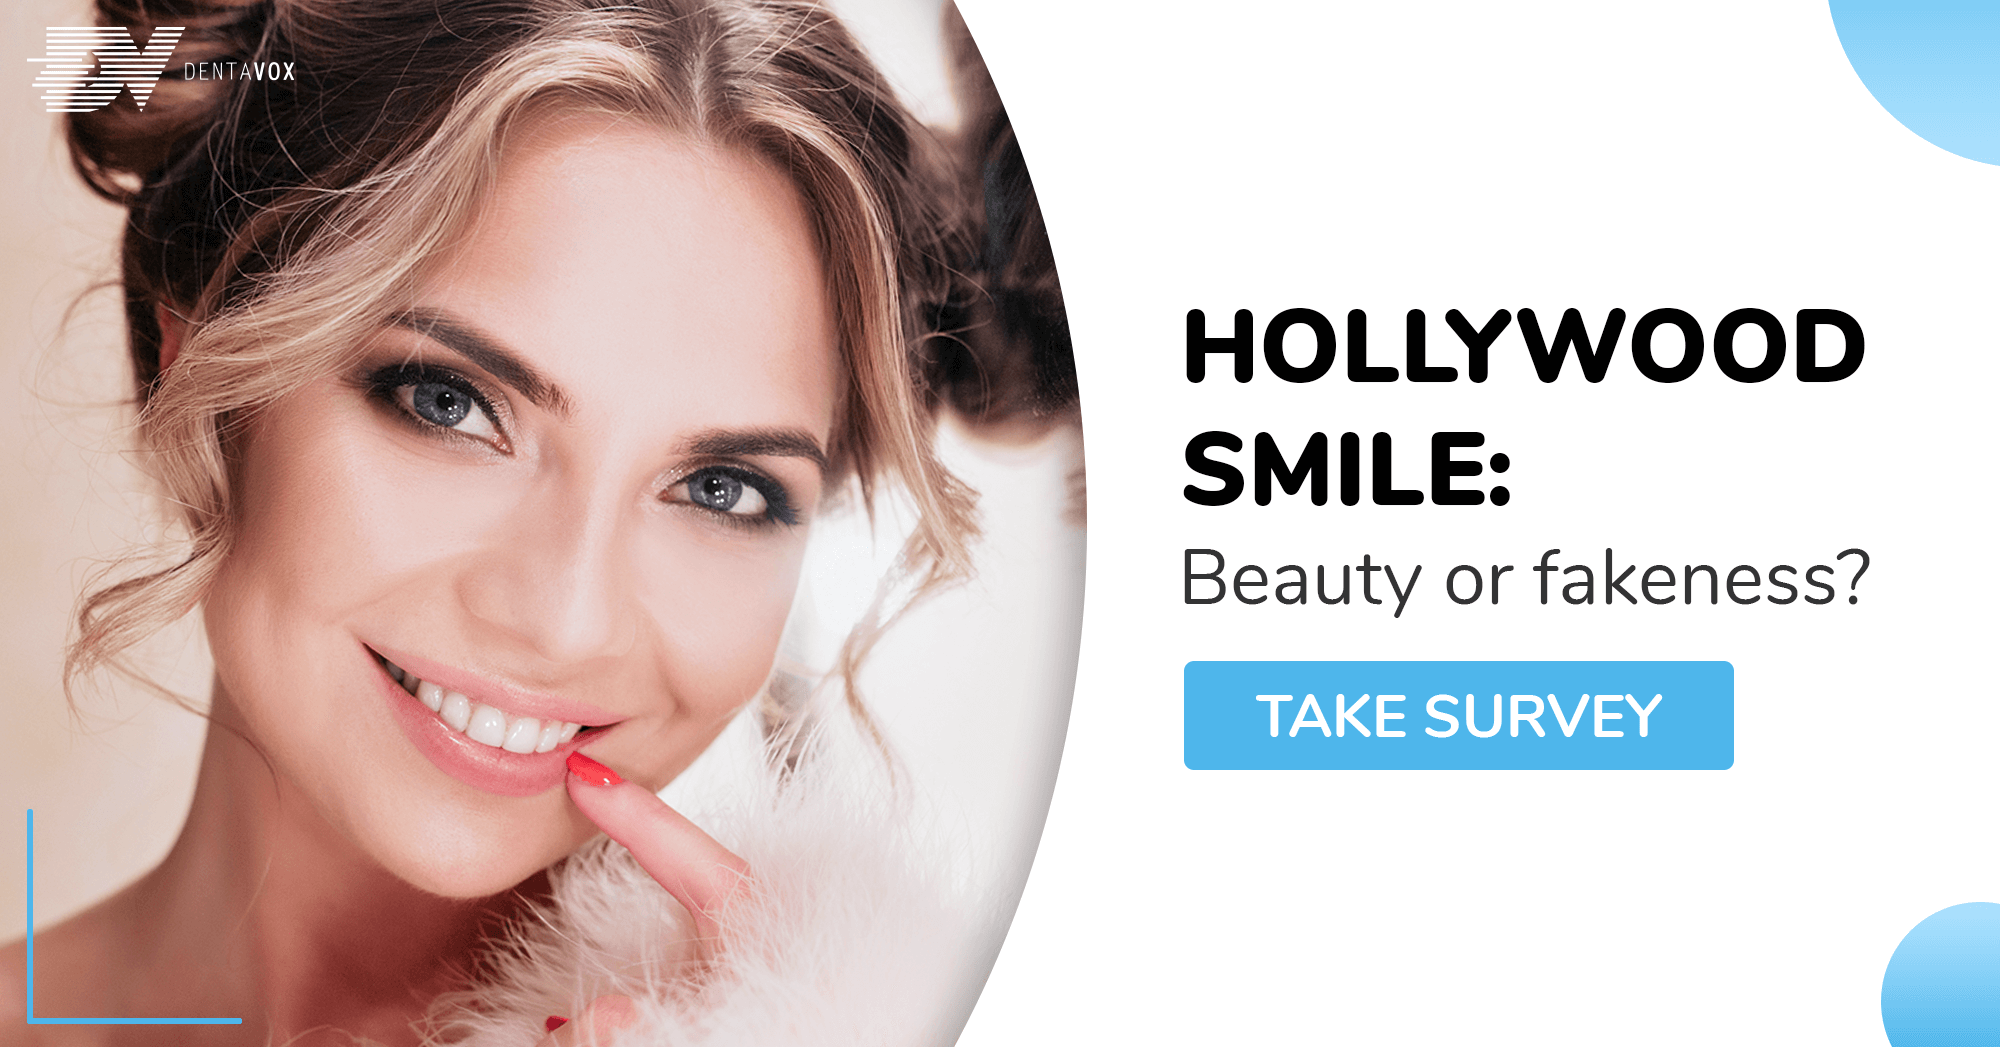 Dentavox paid surveys hollywood smile soc